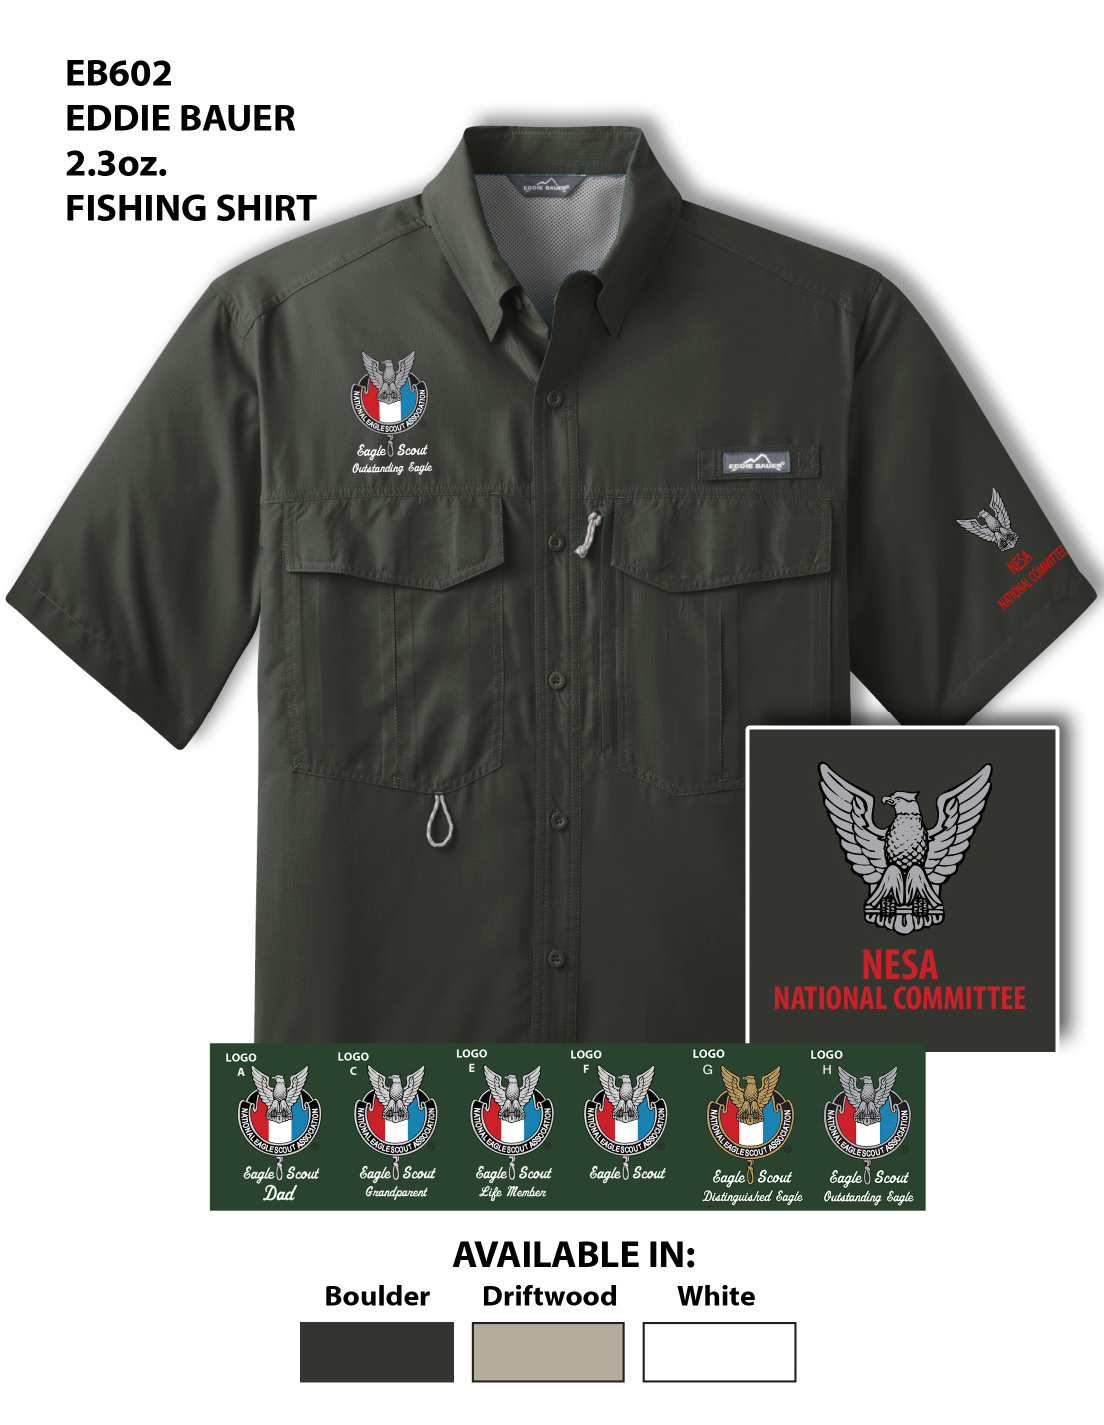 b6b82755510c Fishing Shirts With Logos – EDGE Engineering and Consulting Limited